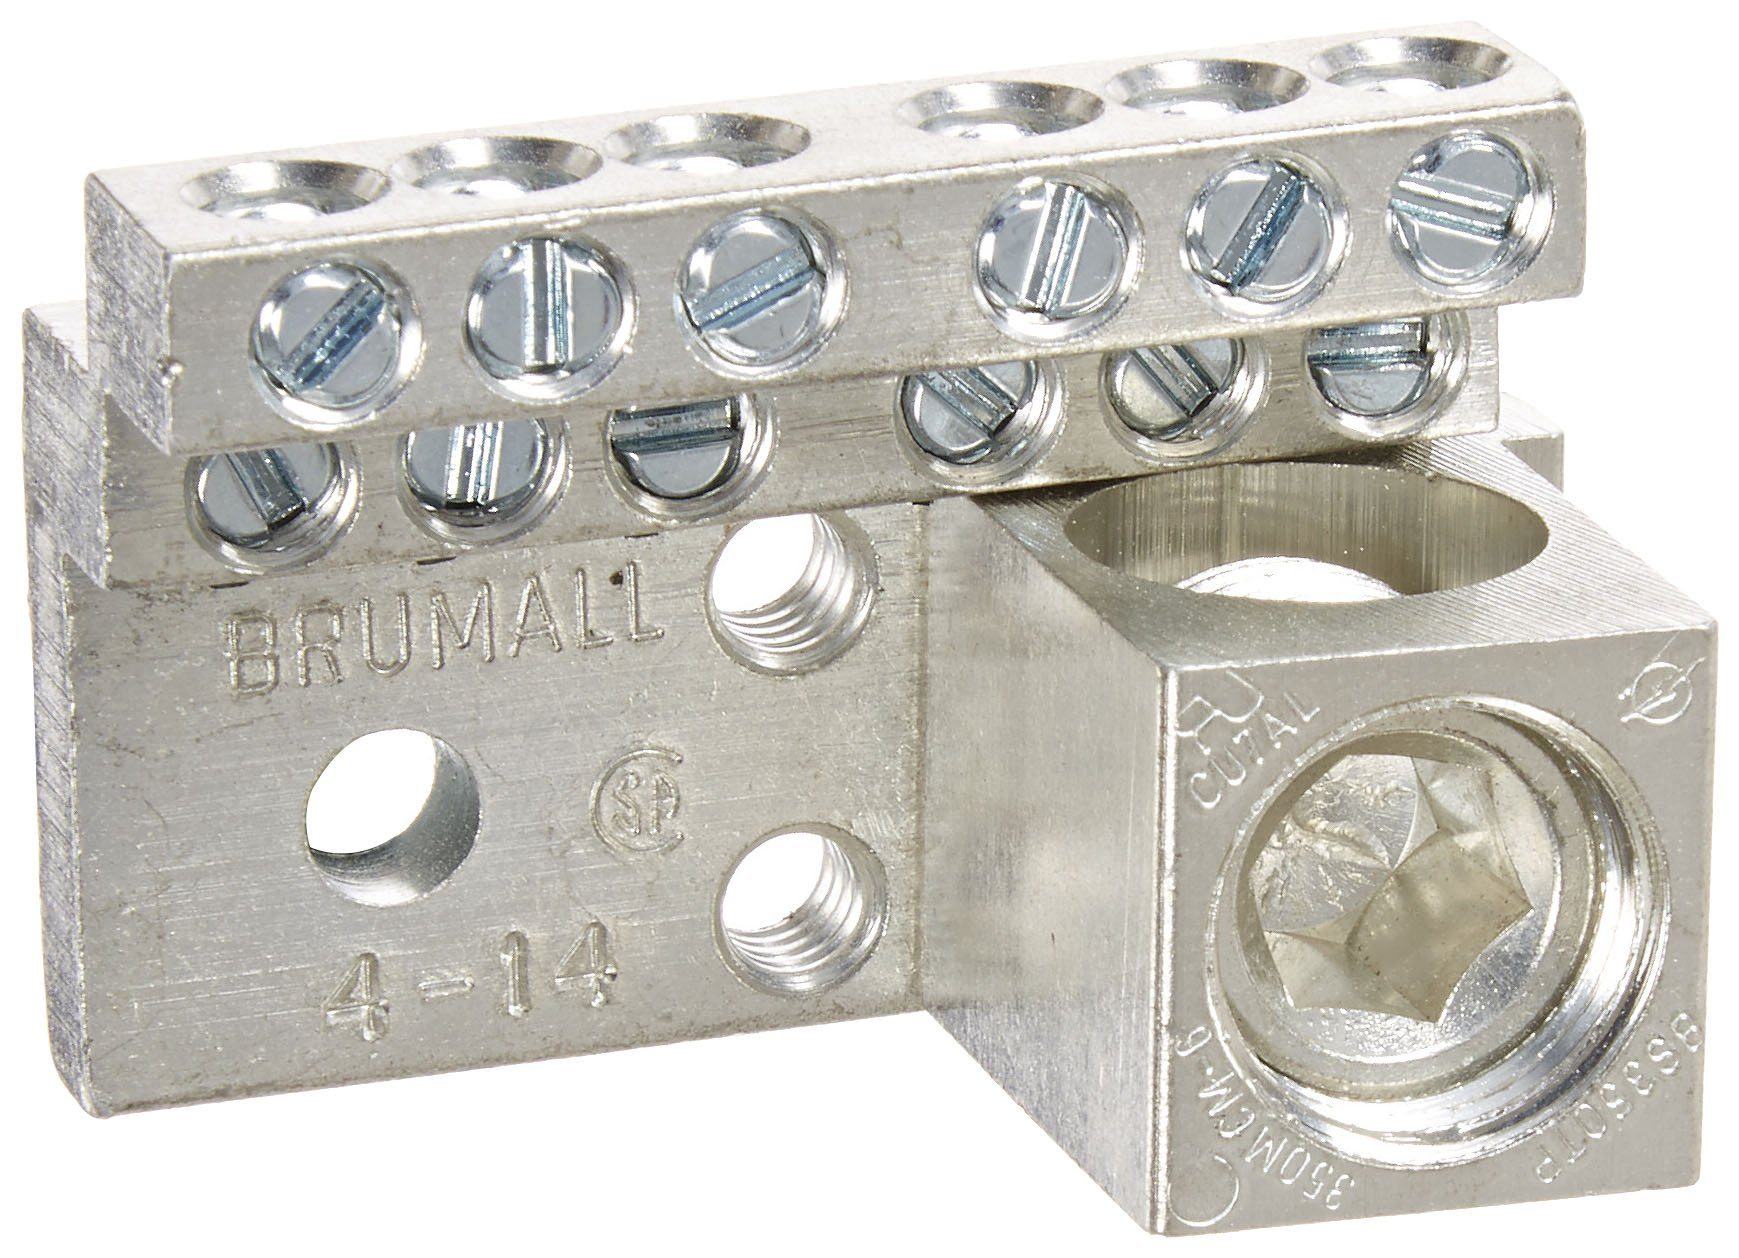 Neutral Bar and Neutral Assembly, 225A Neutral Bar, 4-14 AWG Wire Range, 600VAC Voltage, 350 MCM - 6 Lug Size, 1.500'' Width, 1.375'' Height, 2.193'' Length